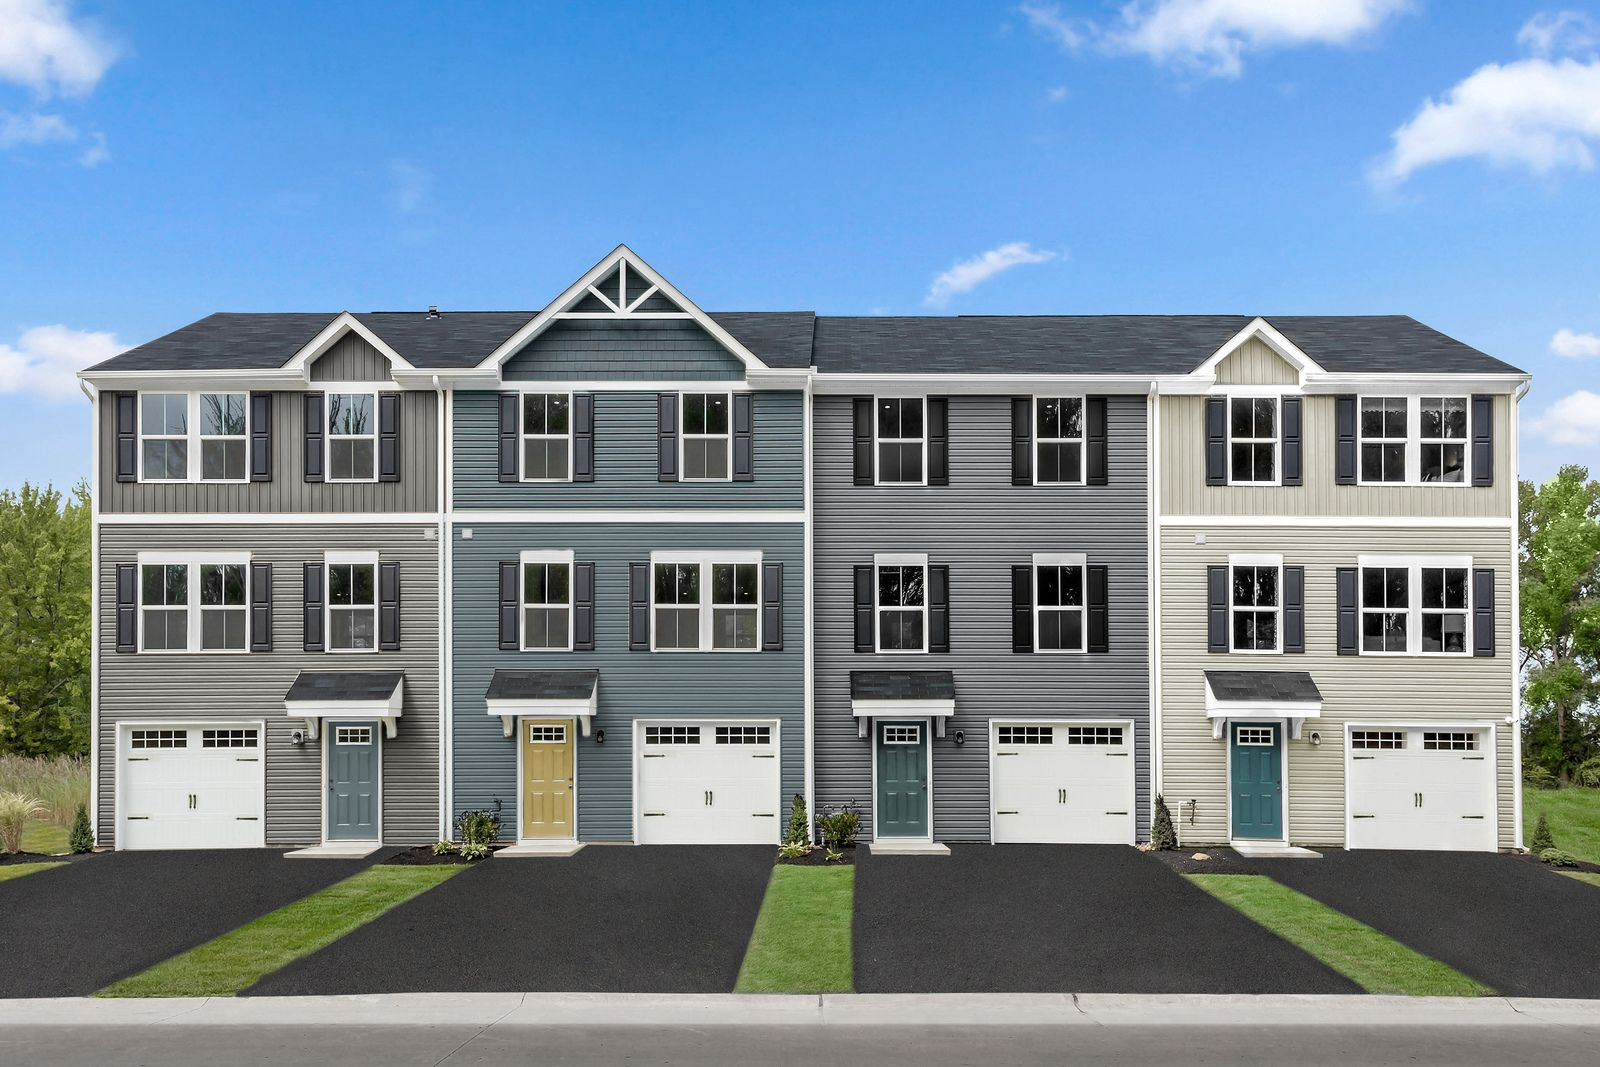 STOP MAKING YOUR LANDLORD RICH:Instead of throwing away thousands in rent, start investing in your future with a new townhome of your own in the Spring Mills School District!Schedule your appointment today!